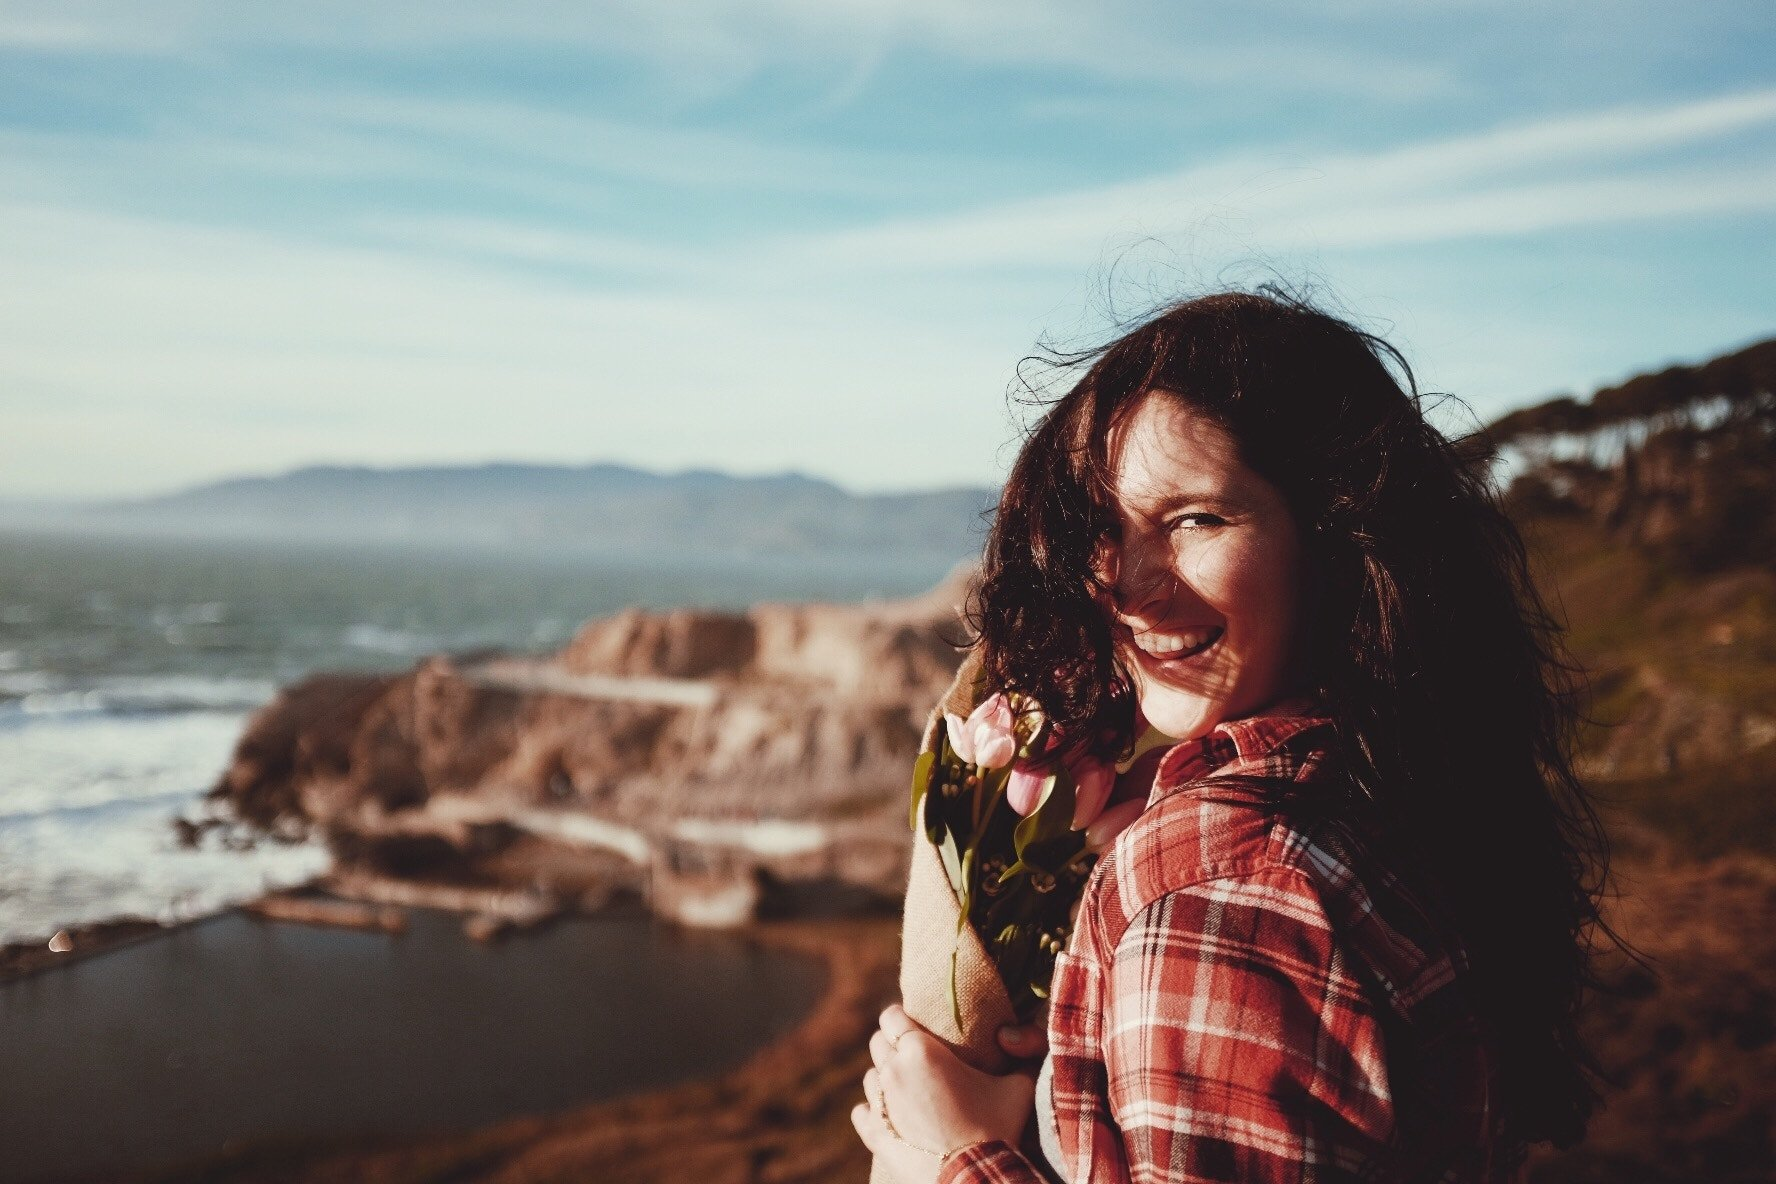 Smiling woman in a red flannel standing on the beach, the camera focused on her face and the flowers she's holding close to her face.